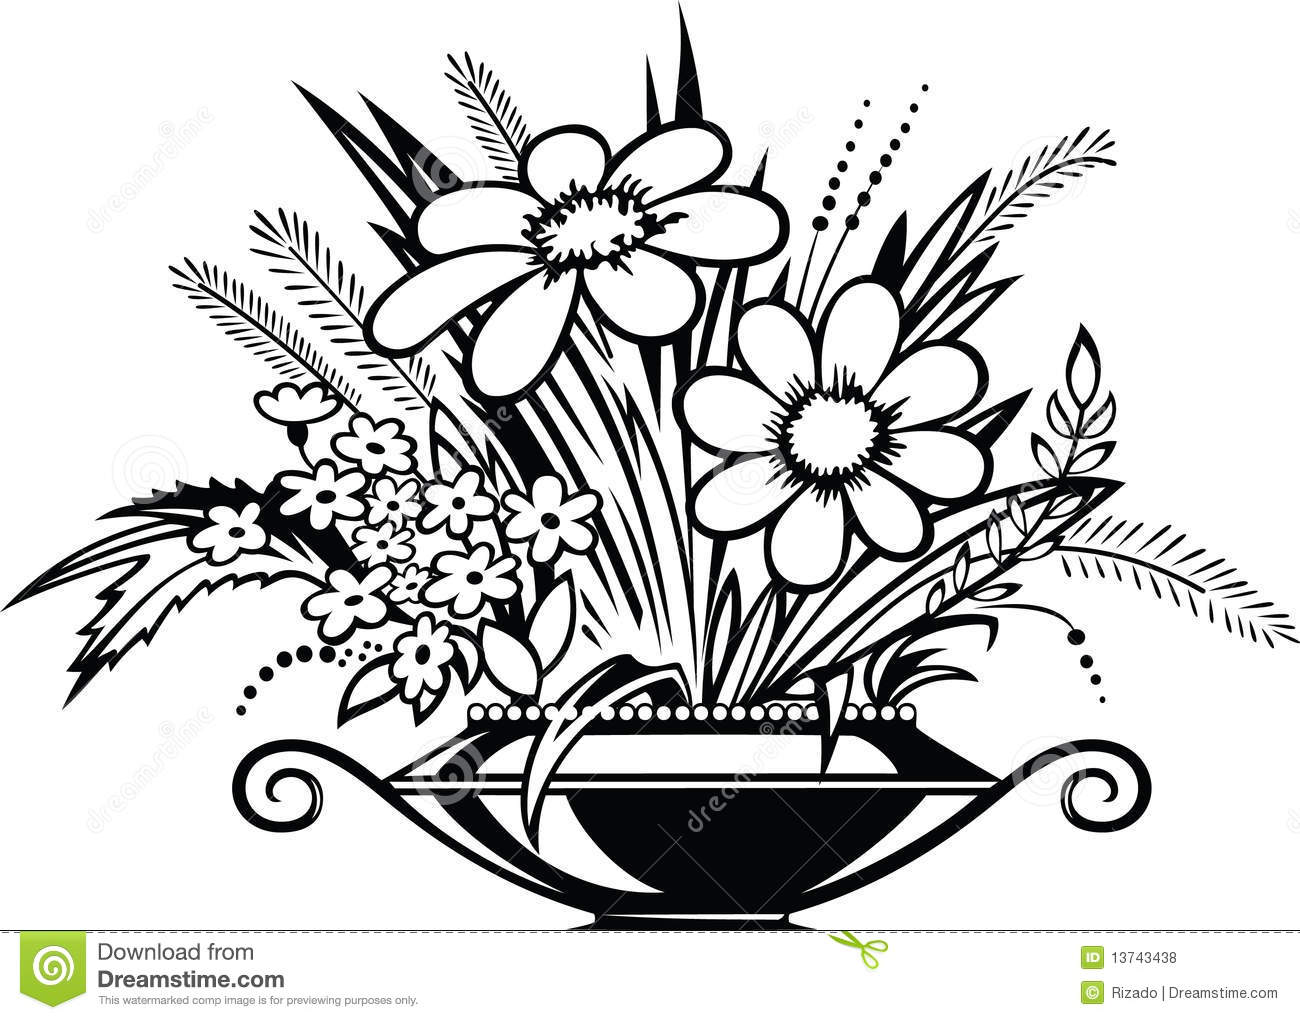 Flower Vase Clipart: Flower Vase Clipart Black And White 6 » Clipart Station